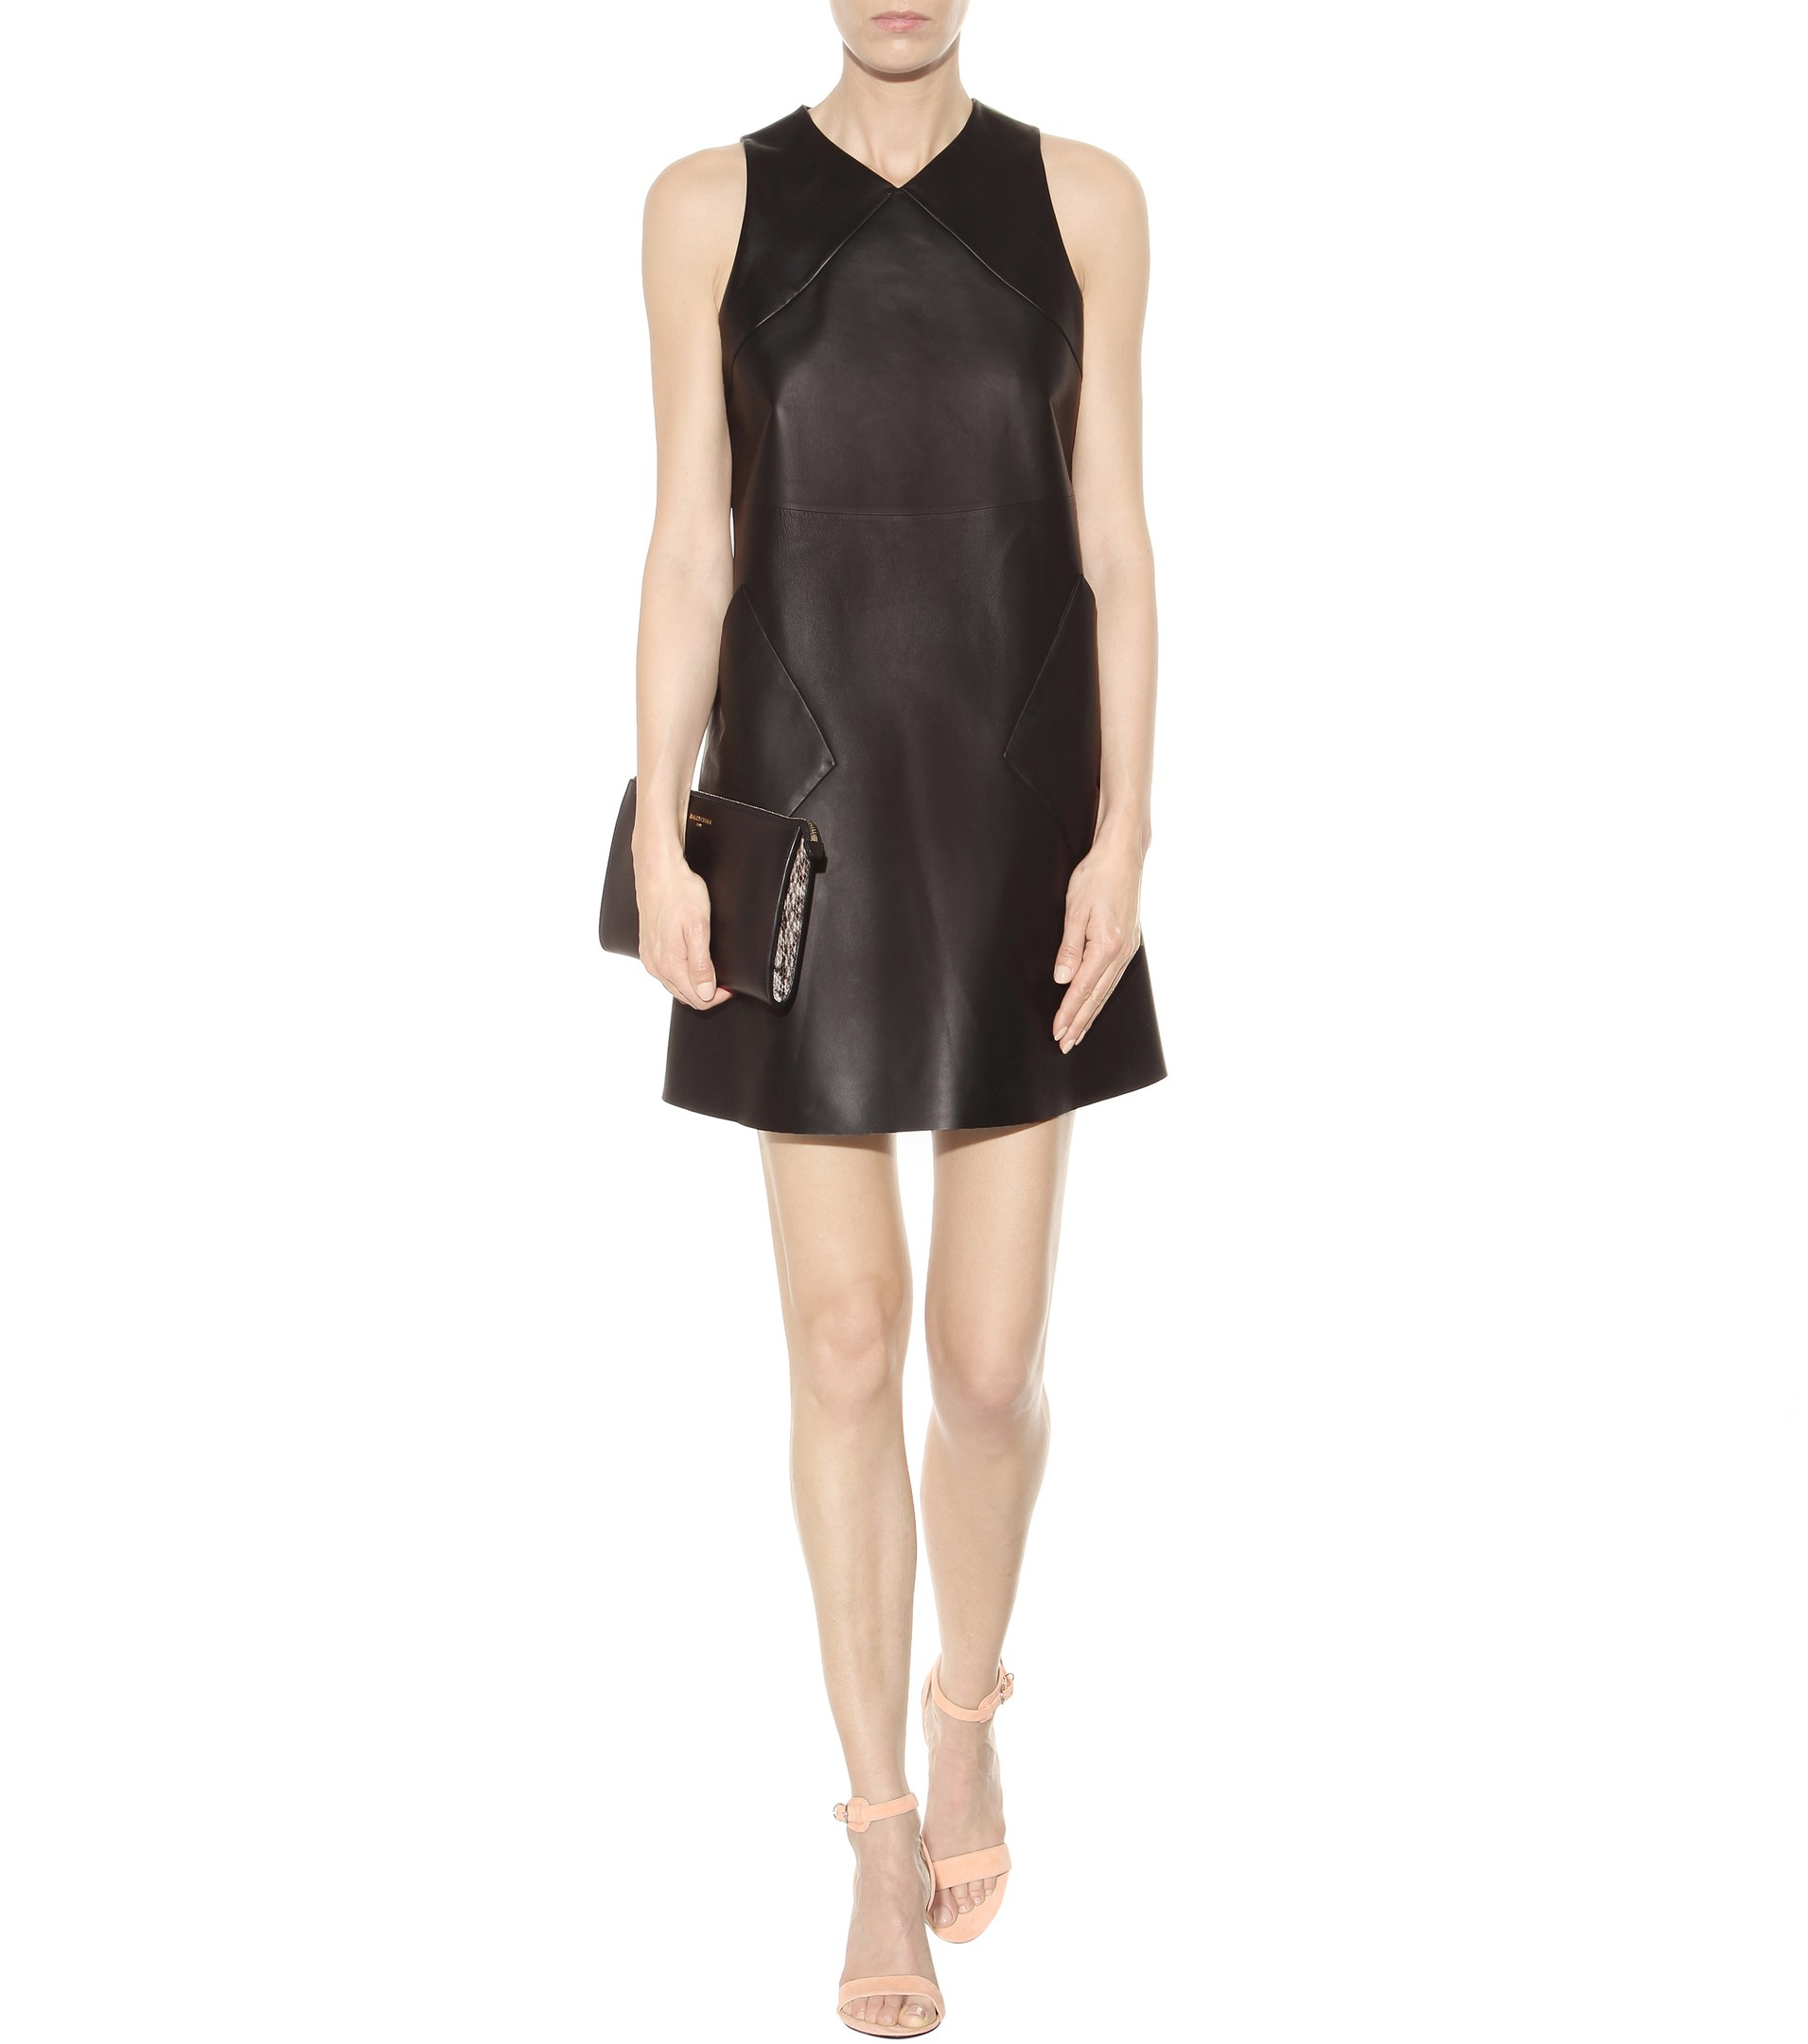 Lyst - Balenciaga Leather Shift Dress in Black e81a5ec1e